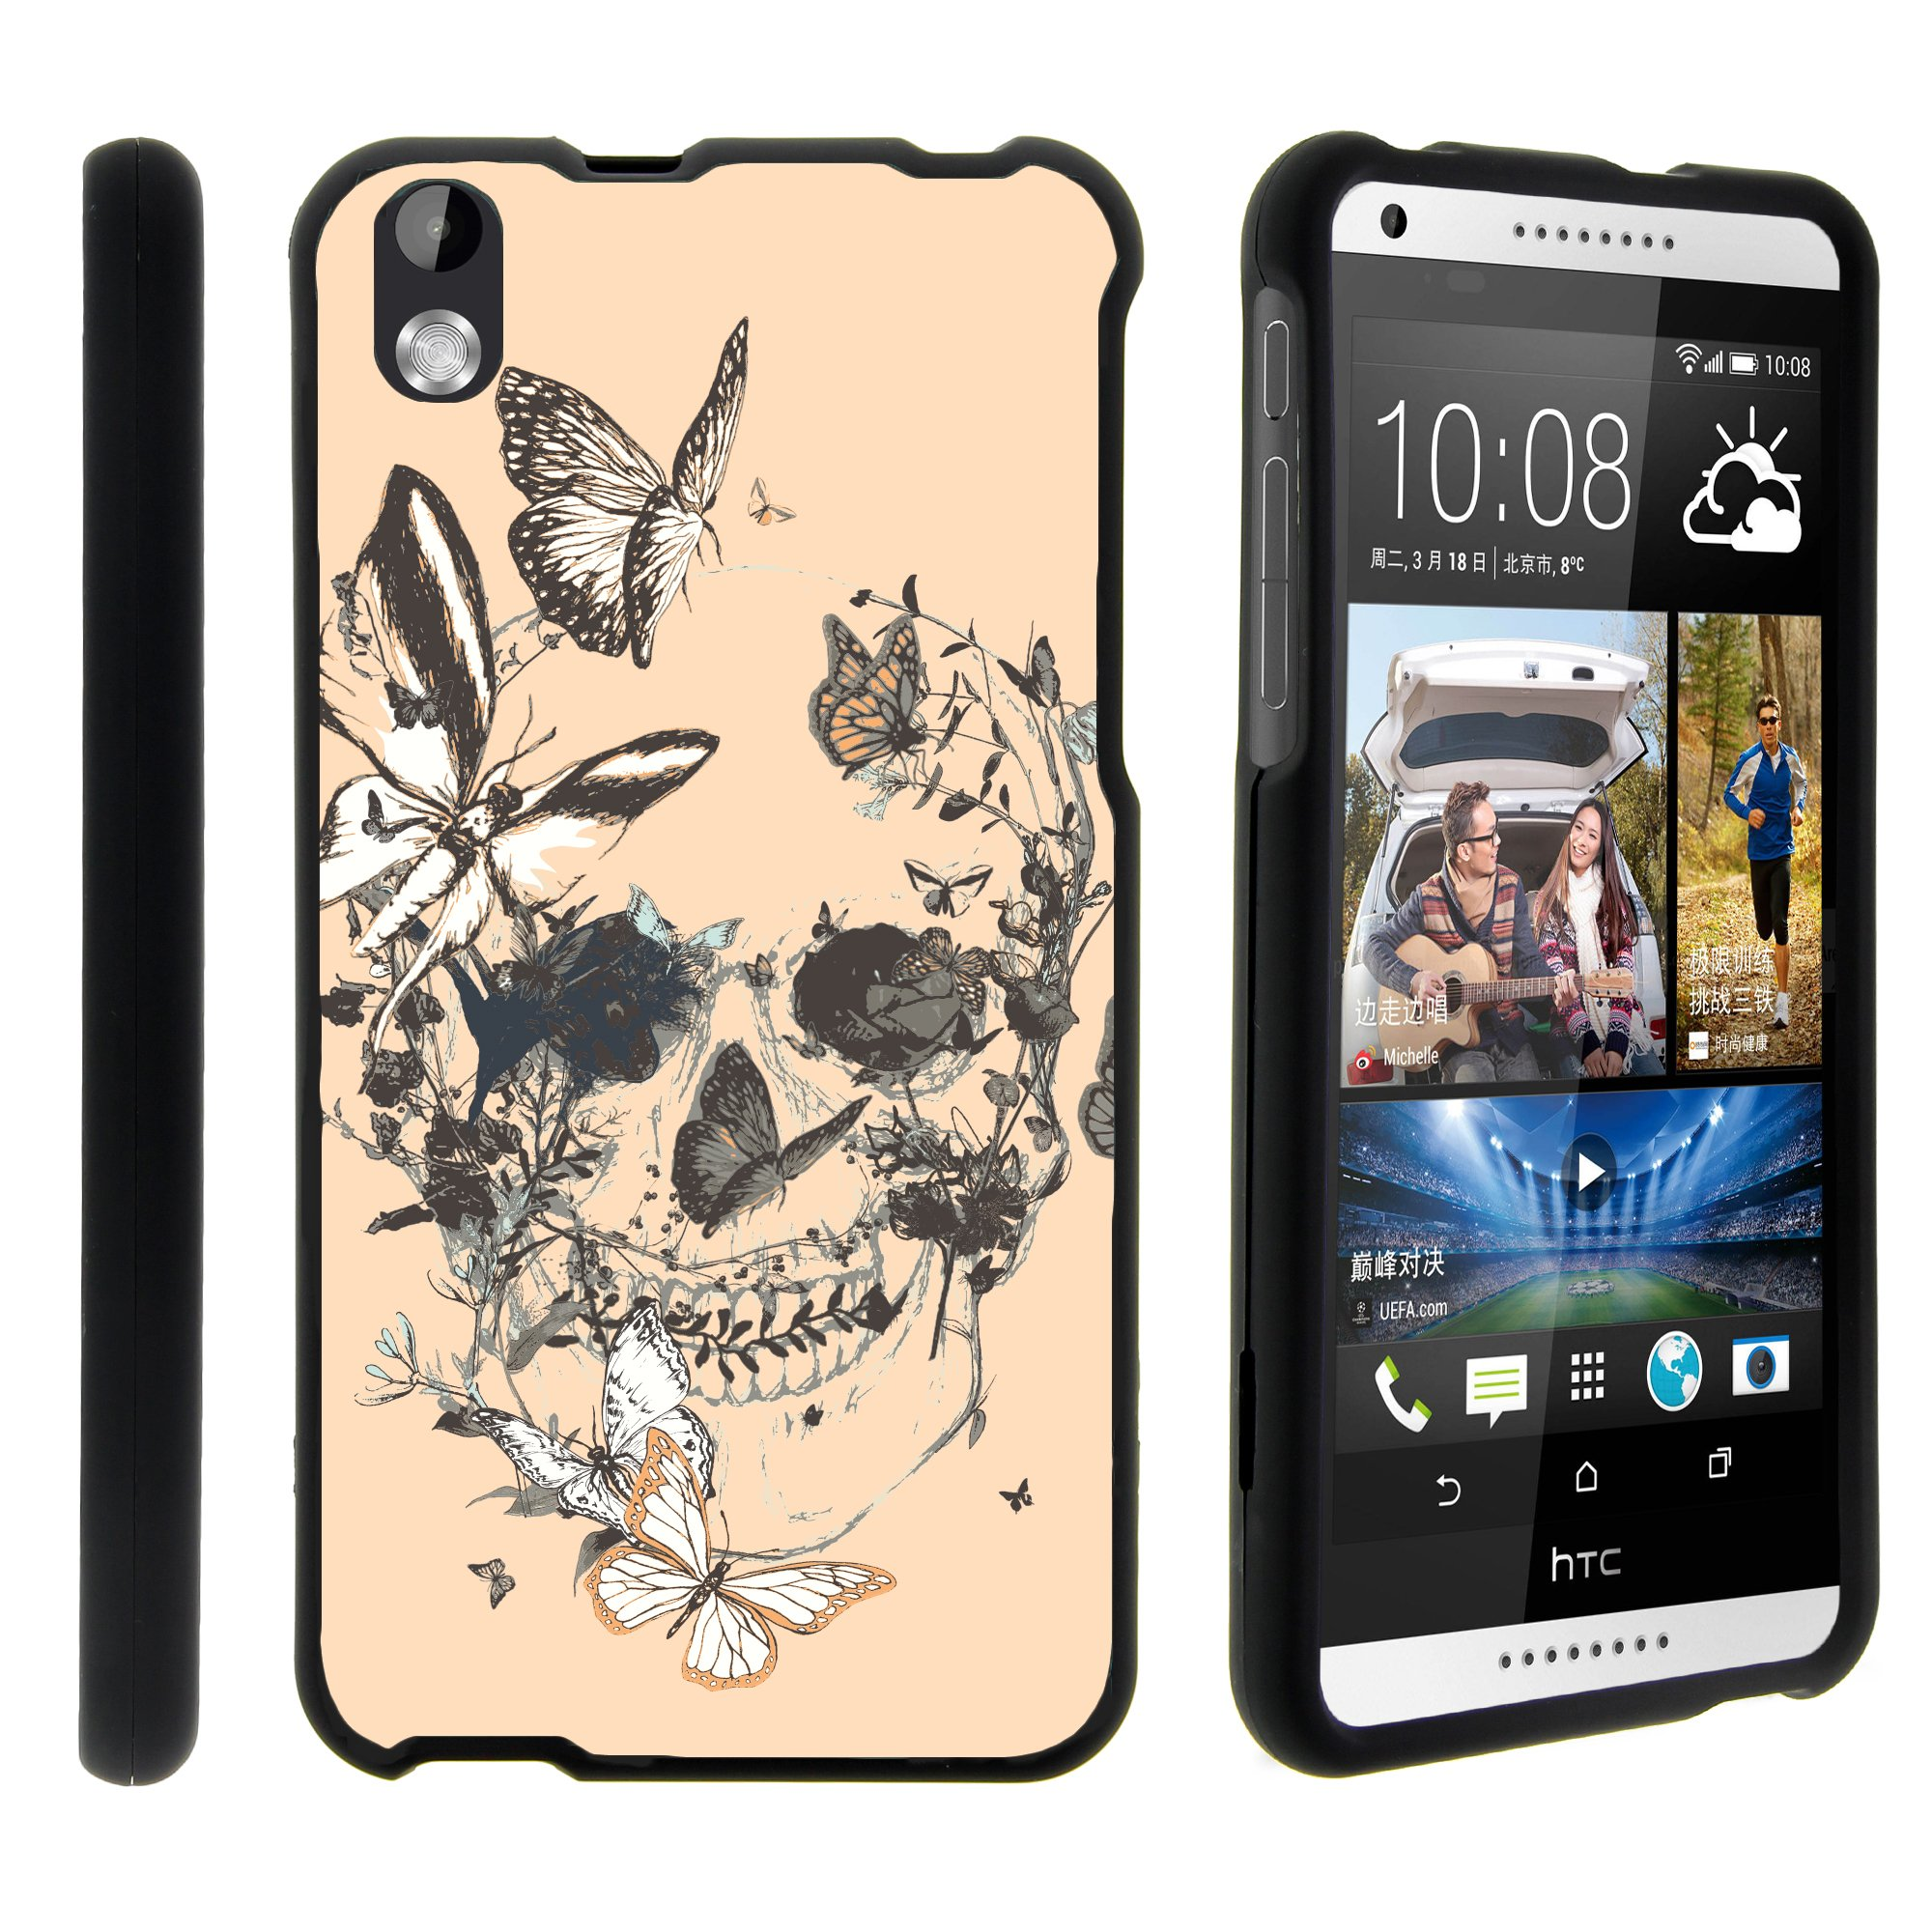 HTC Desire 816, [SNAP SHELL][Matte Black] 2 Piece Snap On Rubberized Hard Plastic Cell Phone Case with Exclusive Art - Butterfly Skull